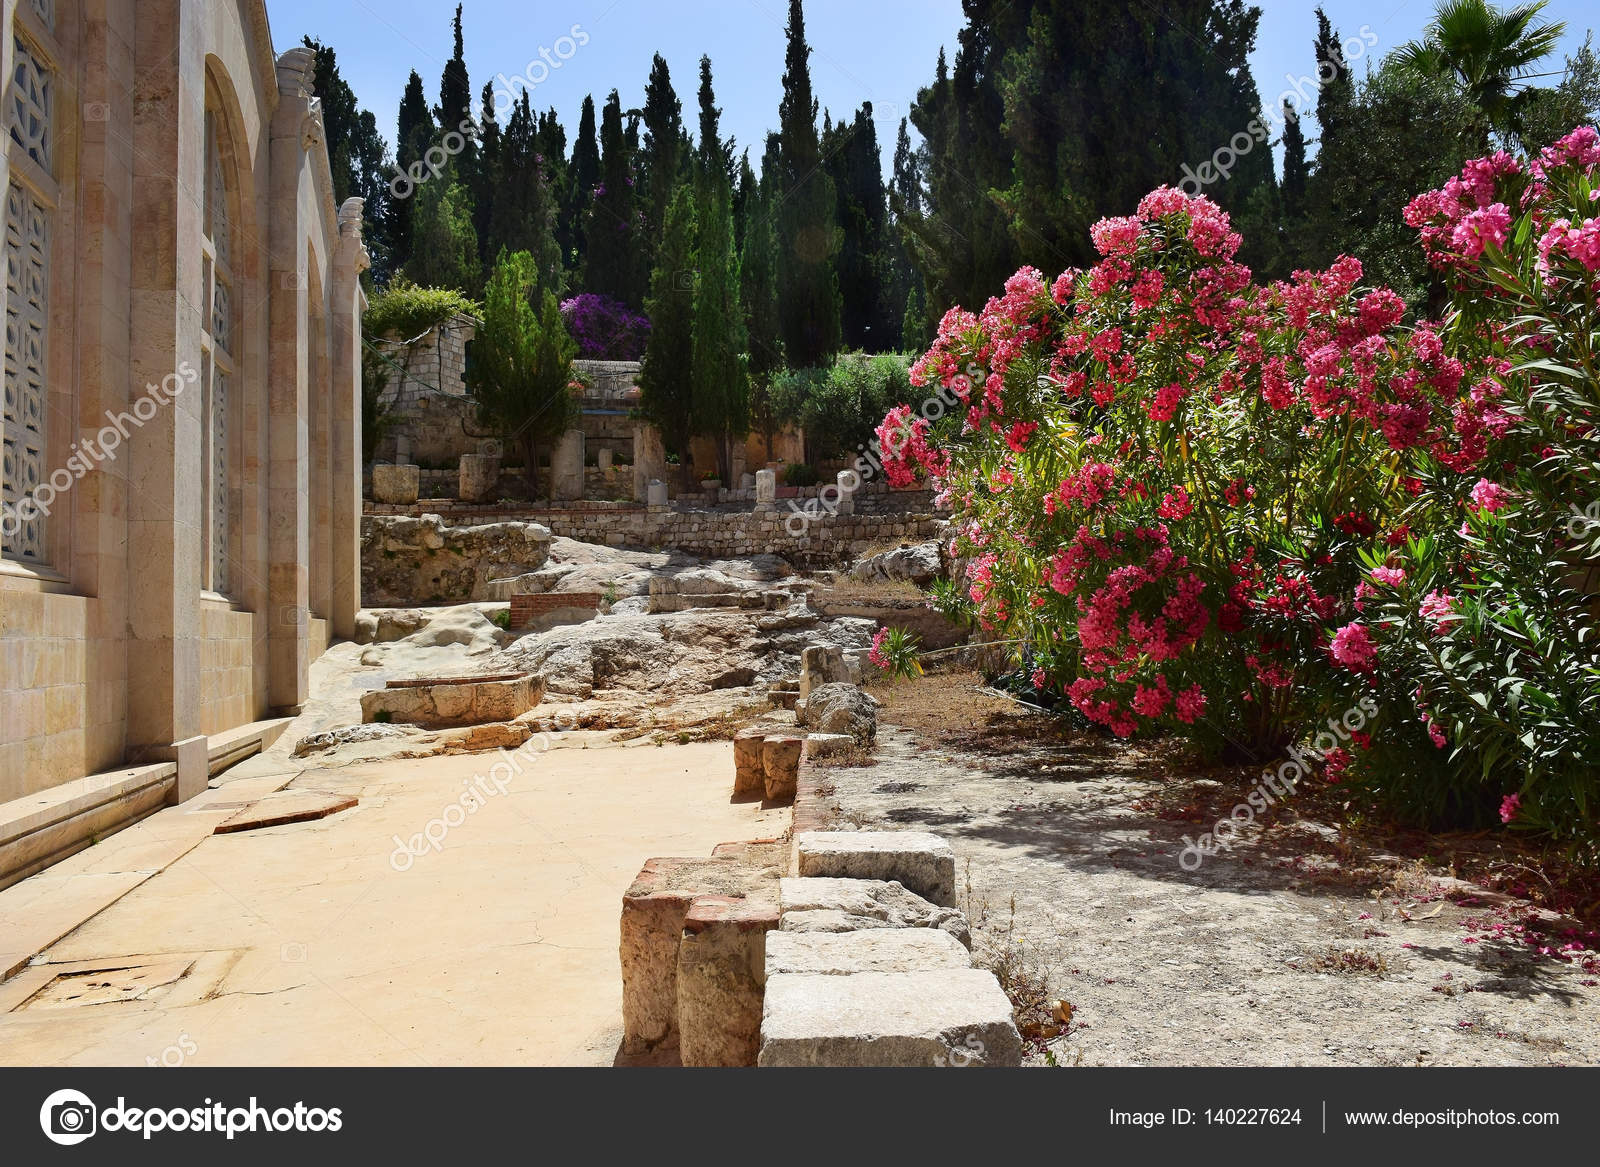 ancient excavations, Church of all Nations, Mount of Olives, Garden ...